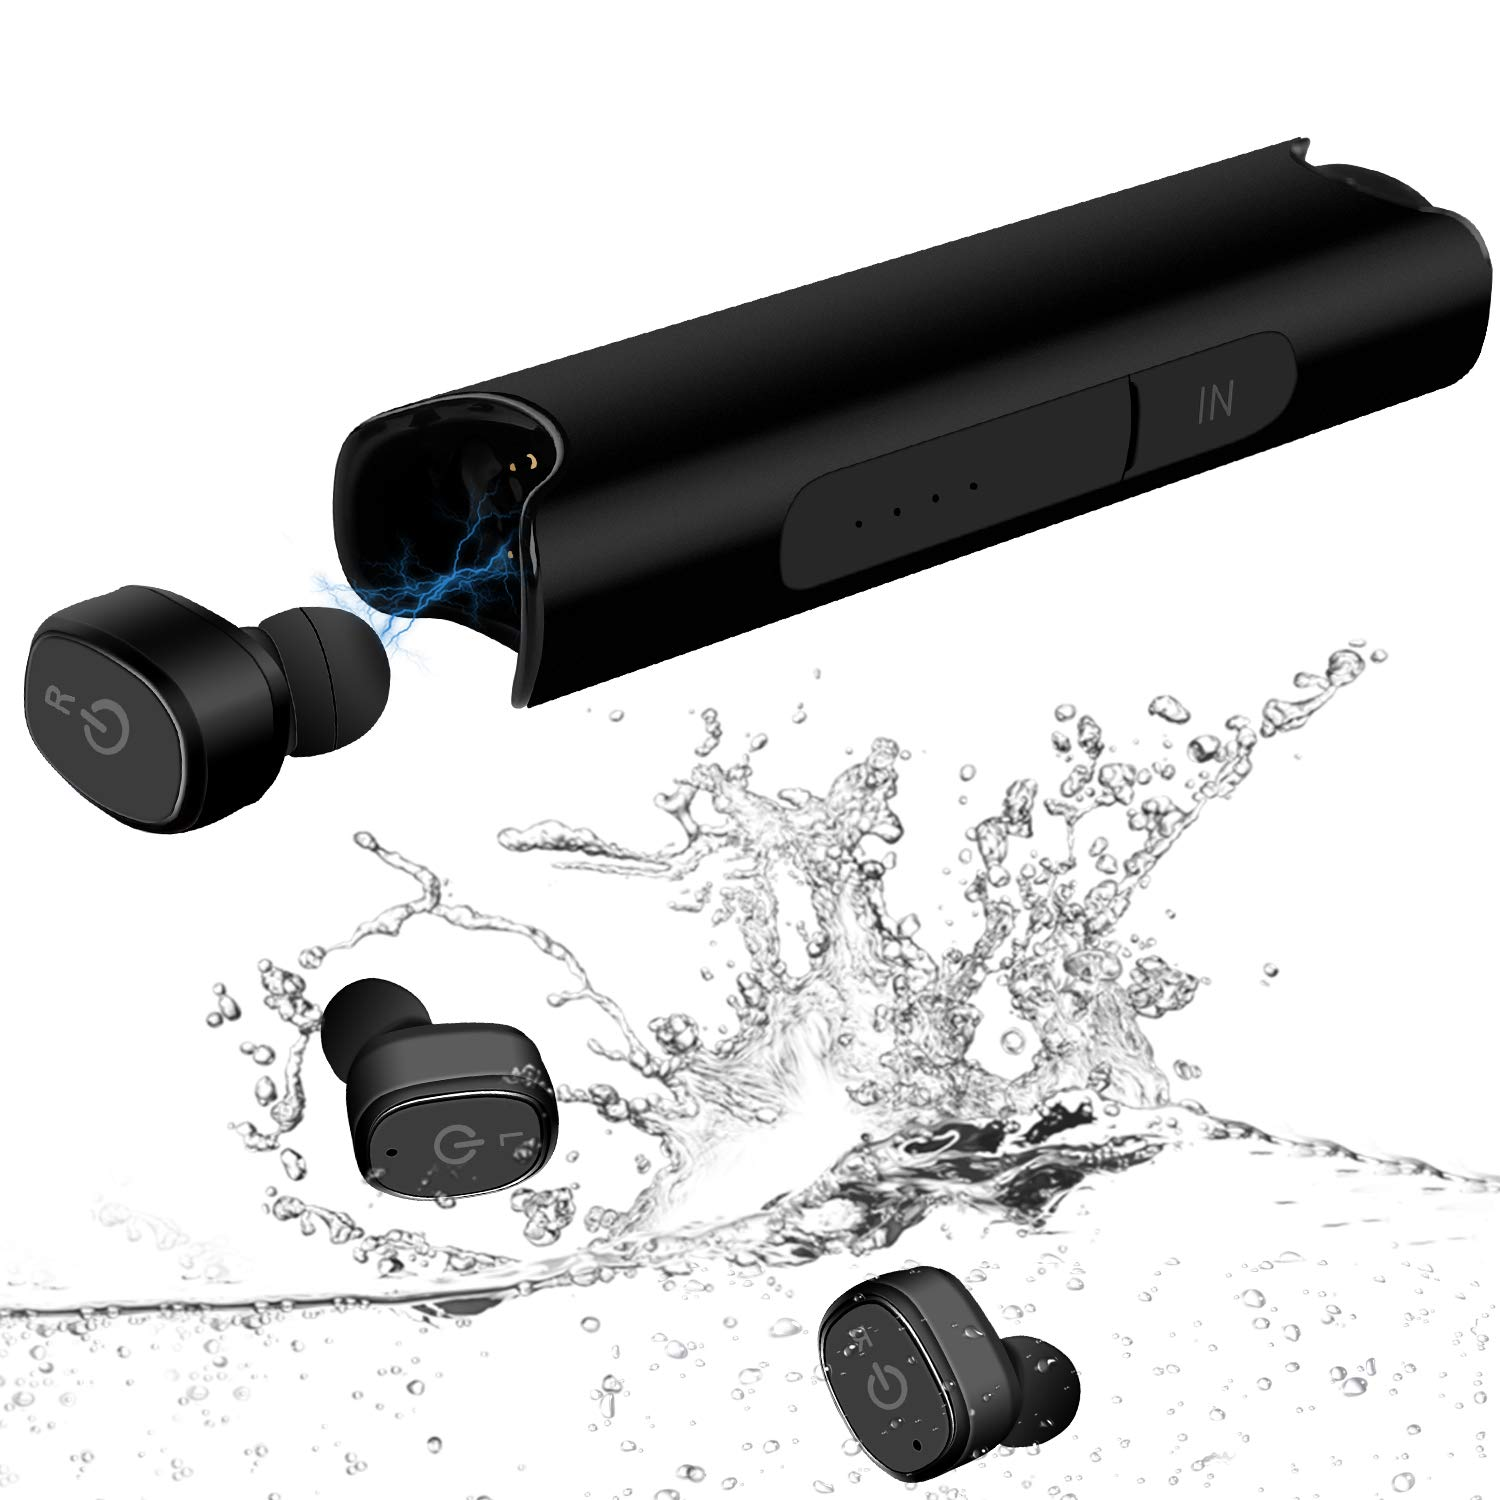 Wireless Earbuds, STOGA S2 Pro Bluetooth Earphones IPX7 Waterproof Sports in-Ear Earbuds Headsets